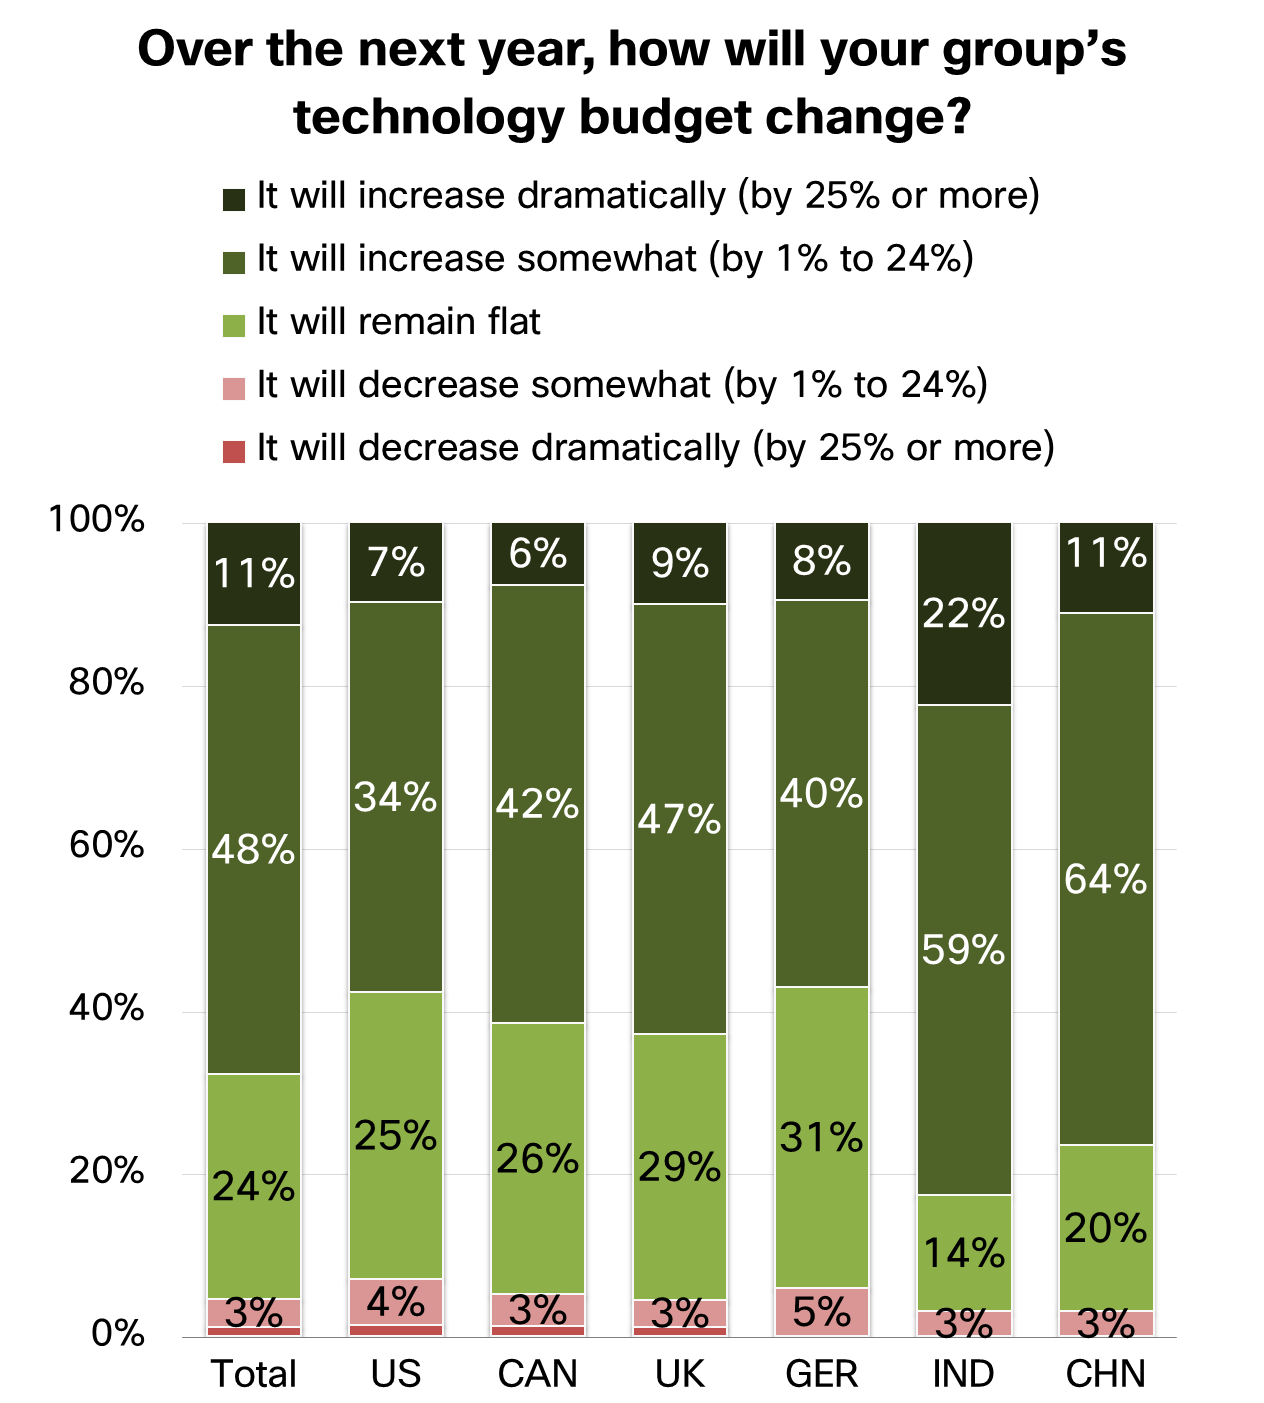 Over the next year how will your group's technology budget change